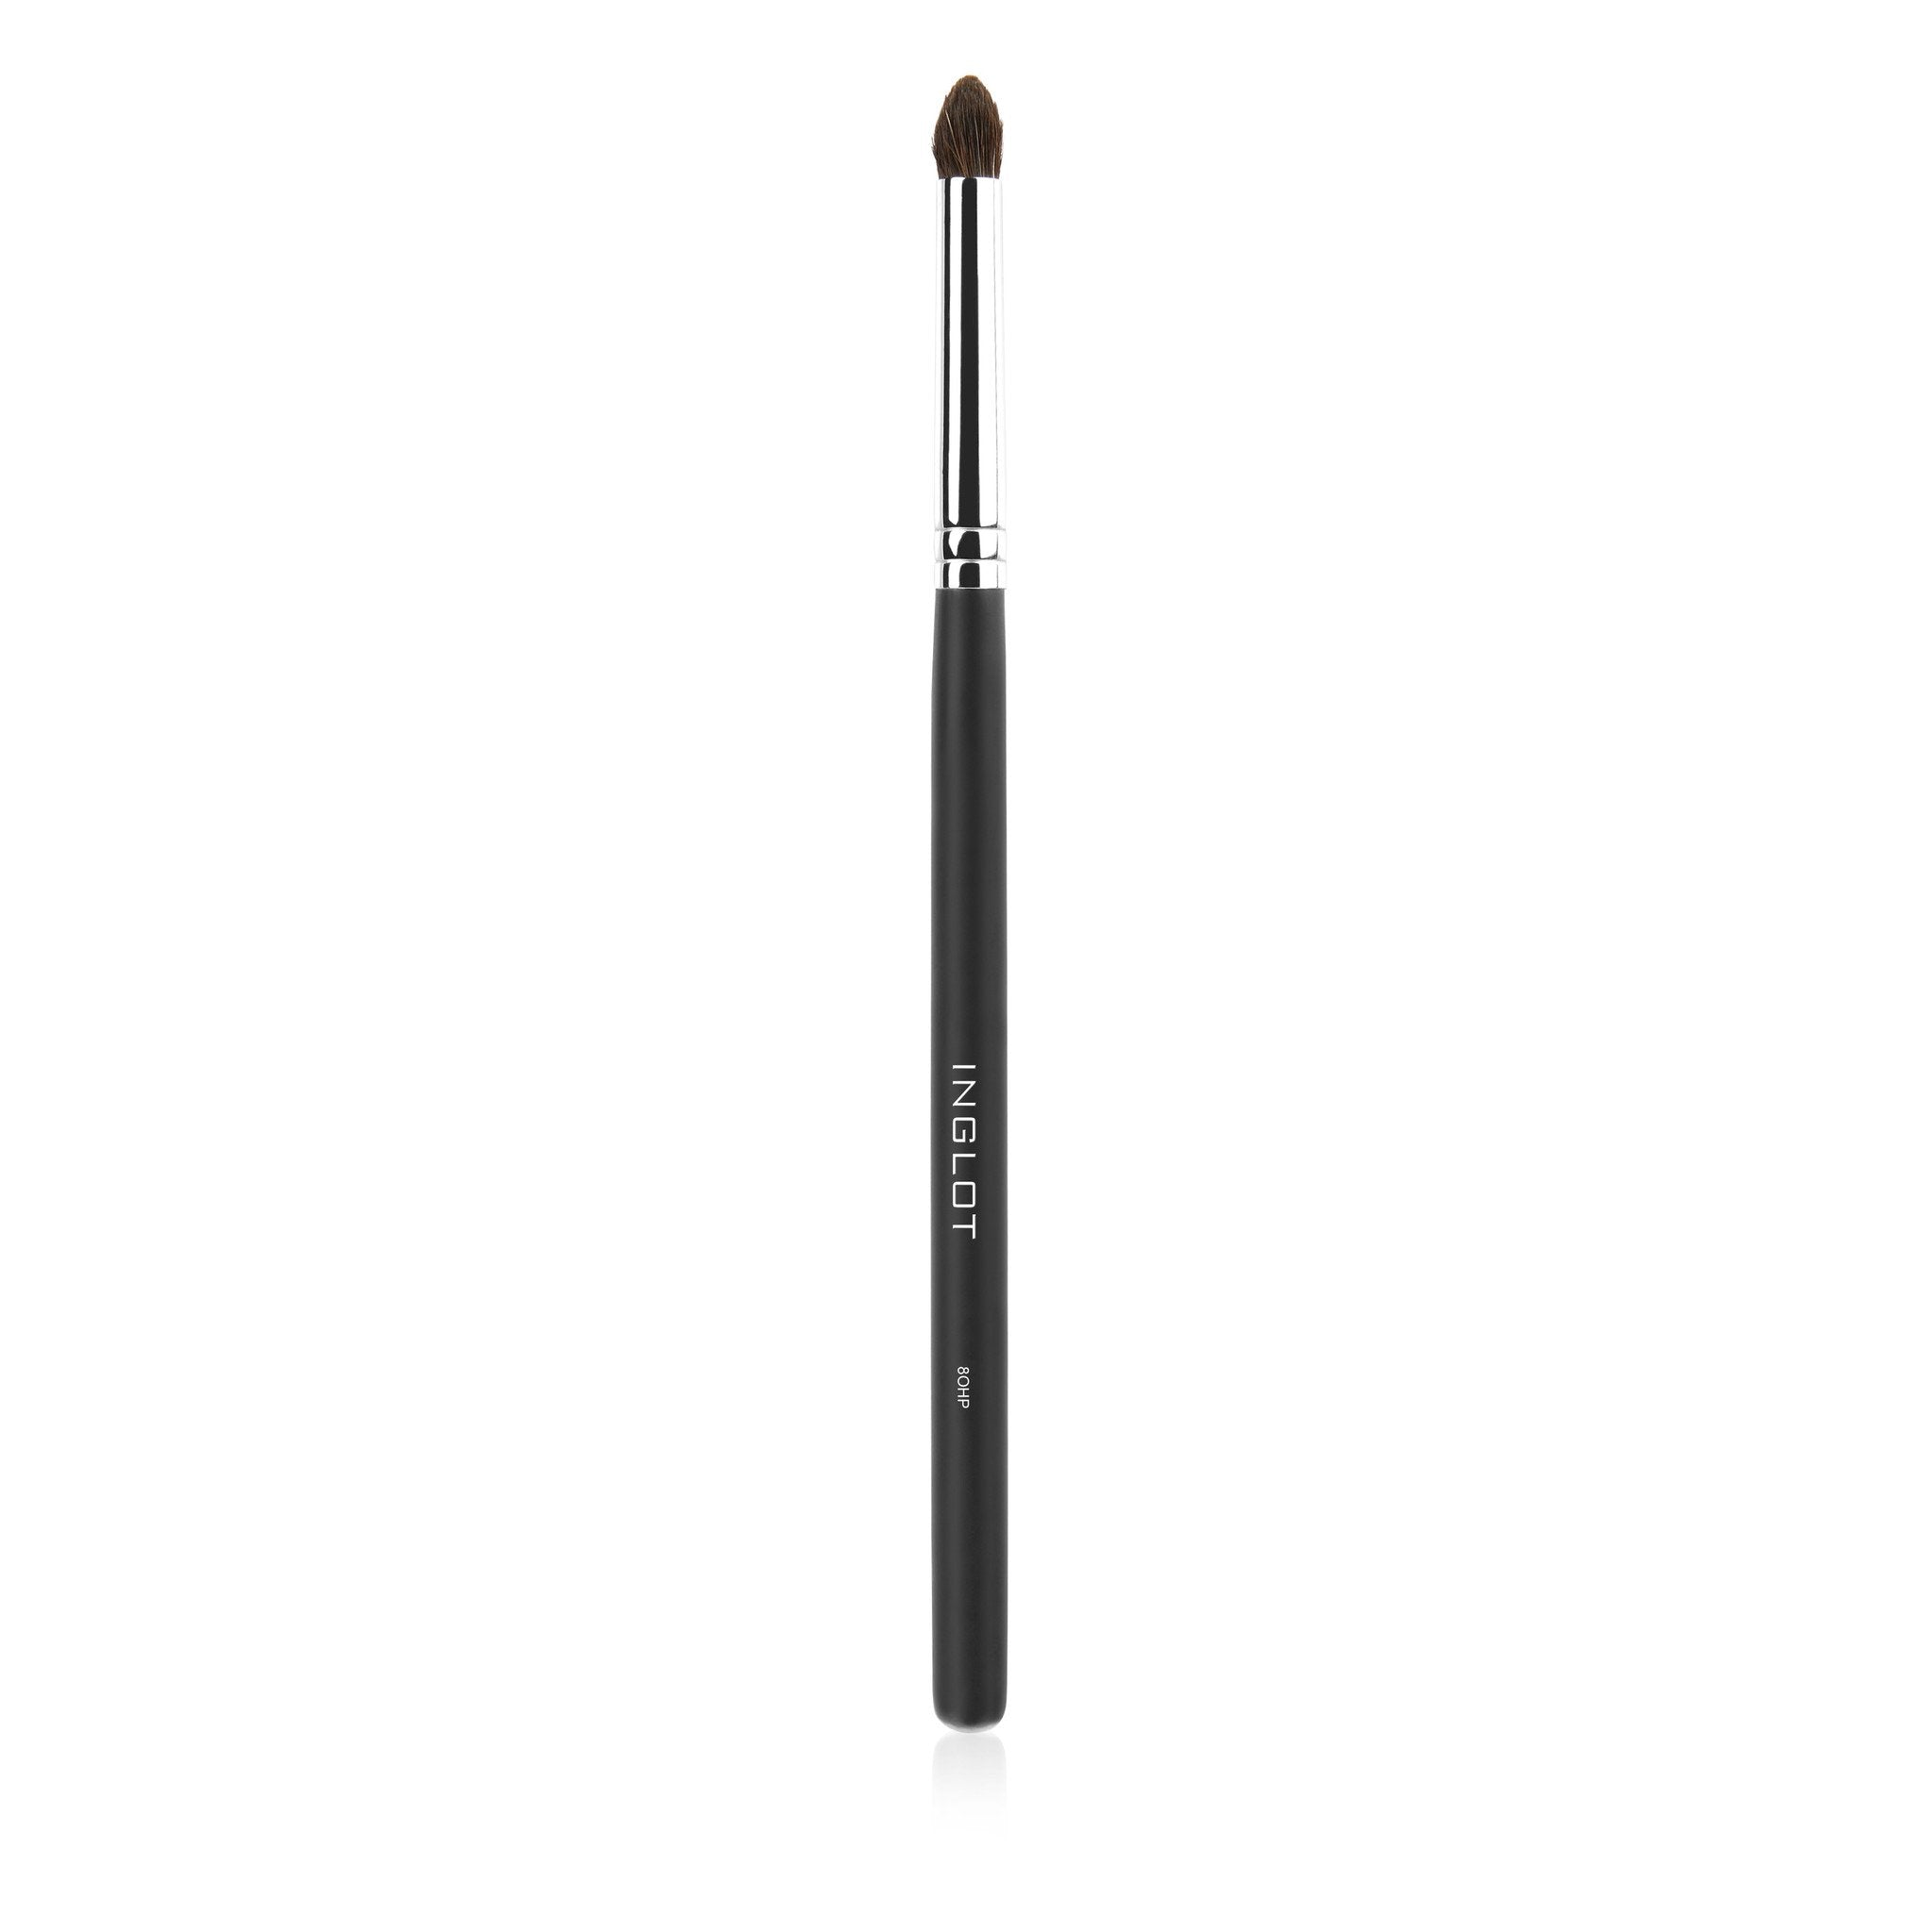 INGLOT - BRUSH 80HP -  - 2